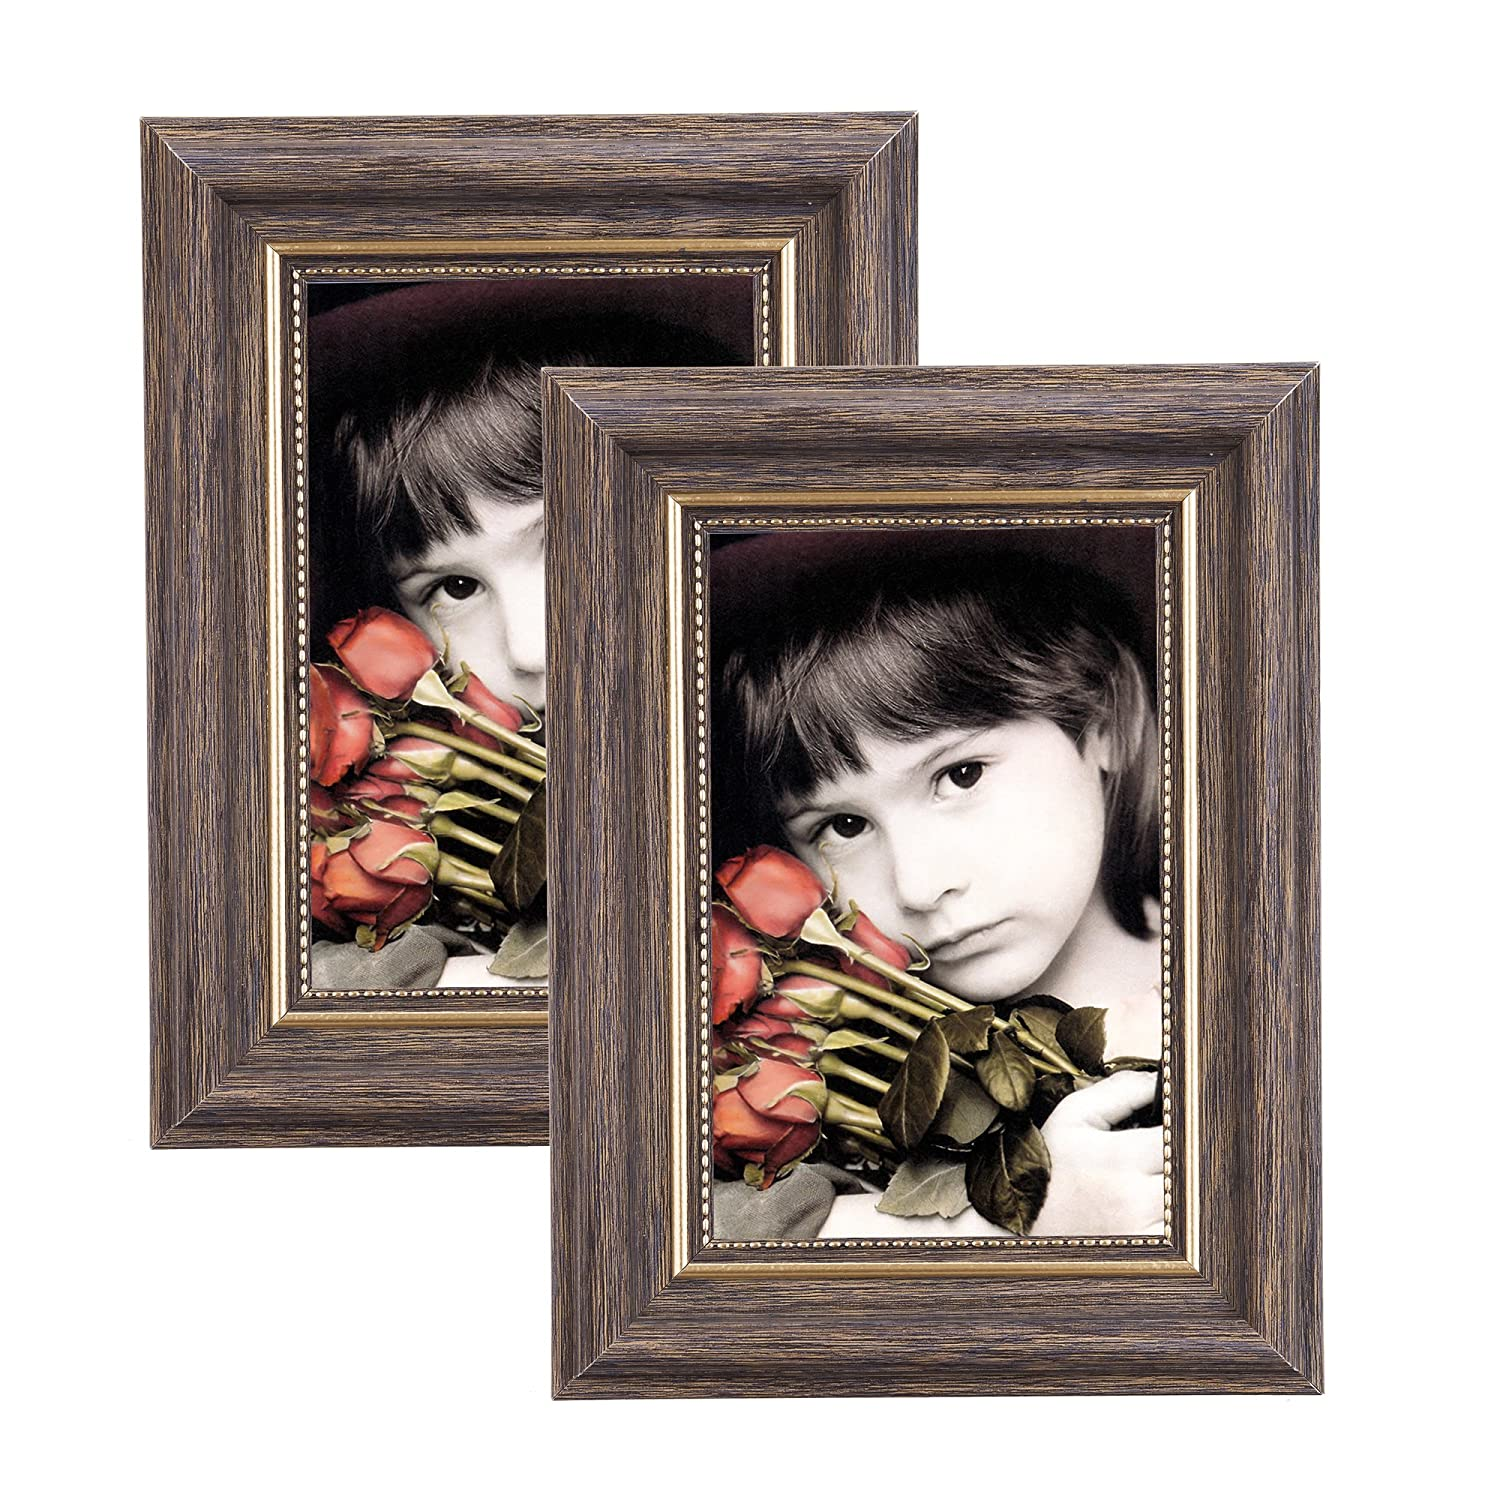 Msicyness Photo Frame 8x10 Vintage Portrait Picture Frames Retro Landscape & Horizontal Poster Frame Standing or Wall Mountable, Birthday Gift for Parents Woman Wedding Anniversary 10x8 Inch Brown